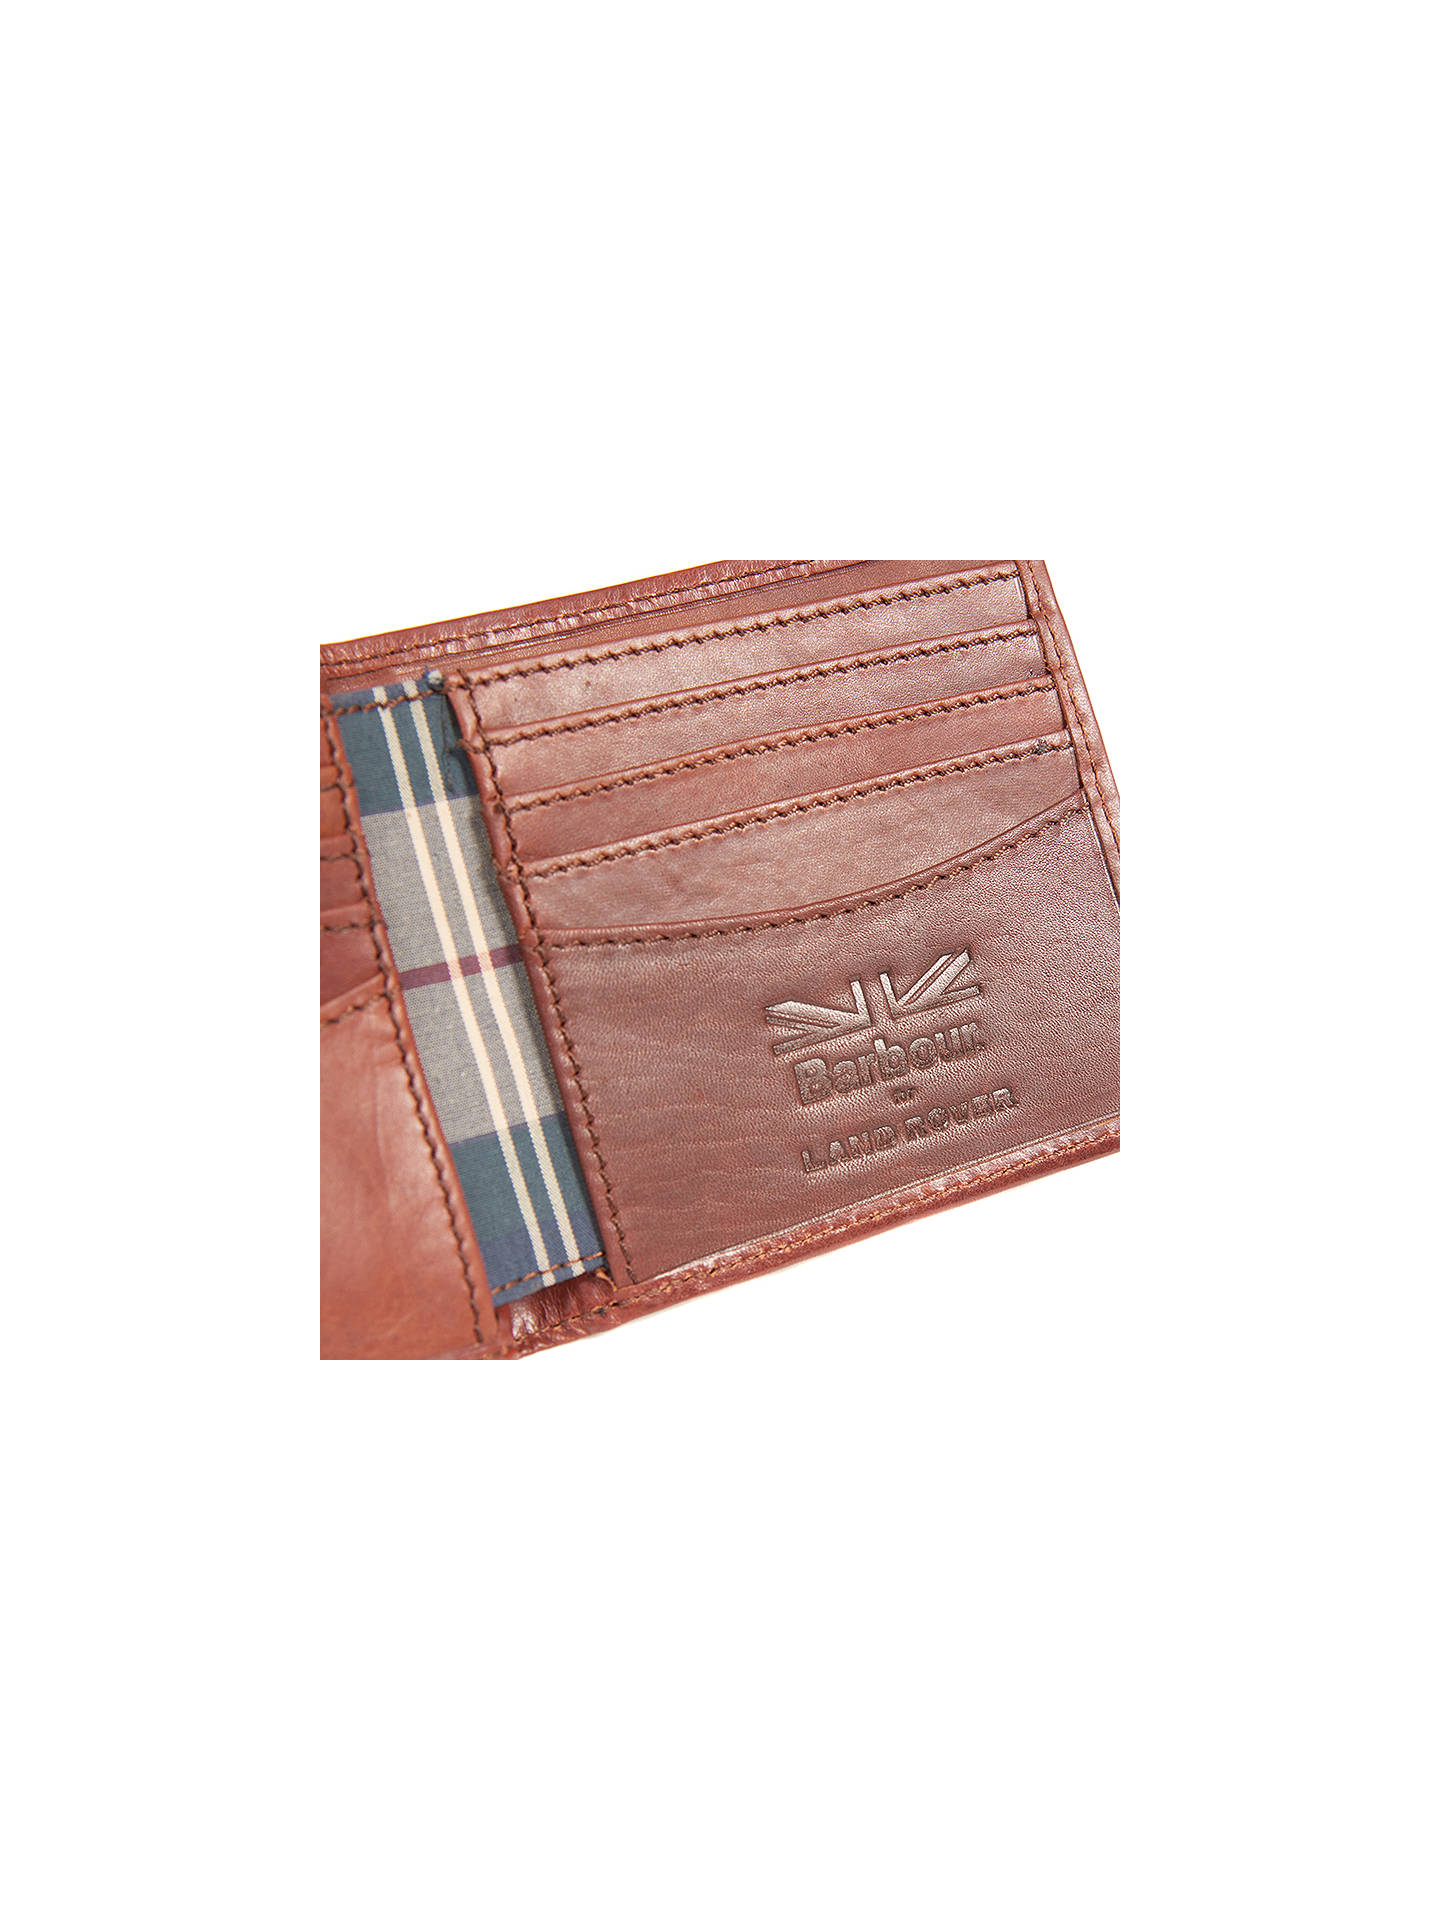 Barbour Land Rover Defender Drywax Wallet Navy At John